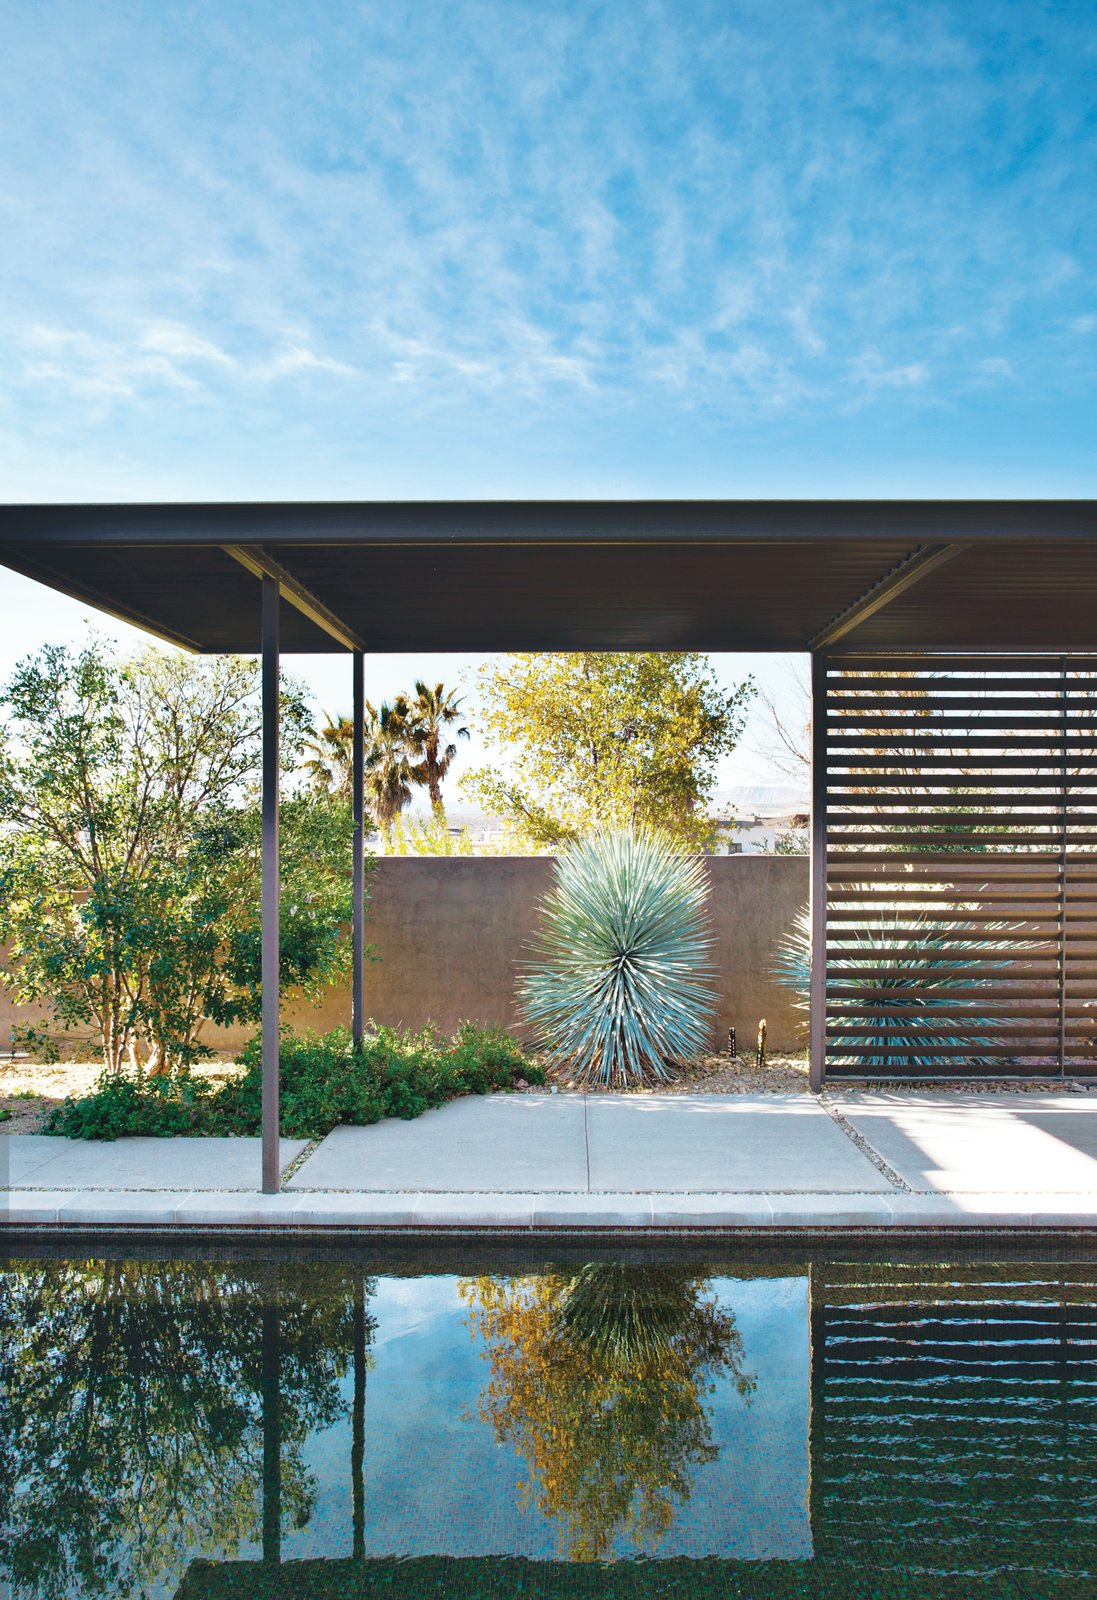 """Murren chose maintenance-free materials, such as Stepstone precast concrete pavers for exterior decks and river-rock-covered flat roofs. He recalls his neighbors' astonishment and delight when """"we went from a giant hole in the ground to a two-story house in just four days.""""  Photo 5 of 5 in A Picturesque Desert Prefab"""